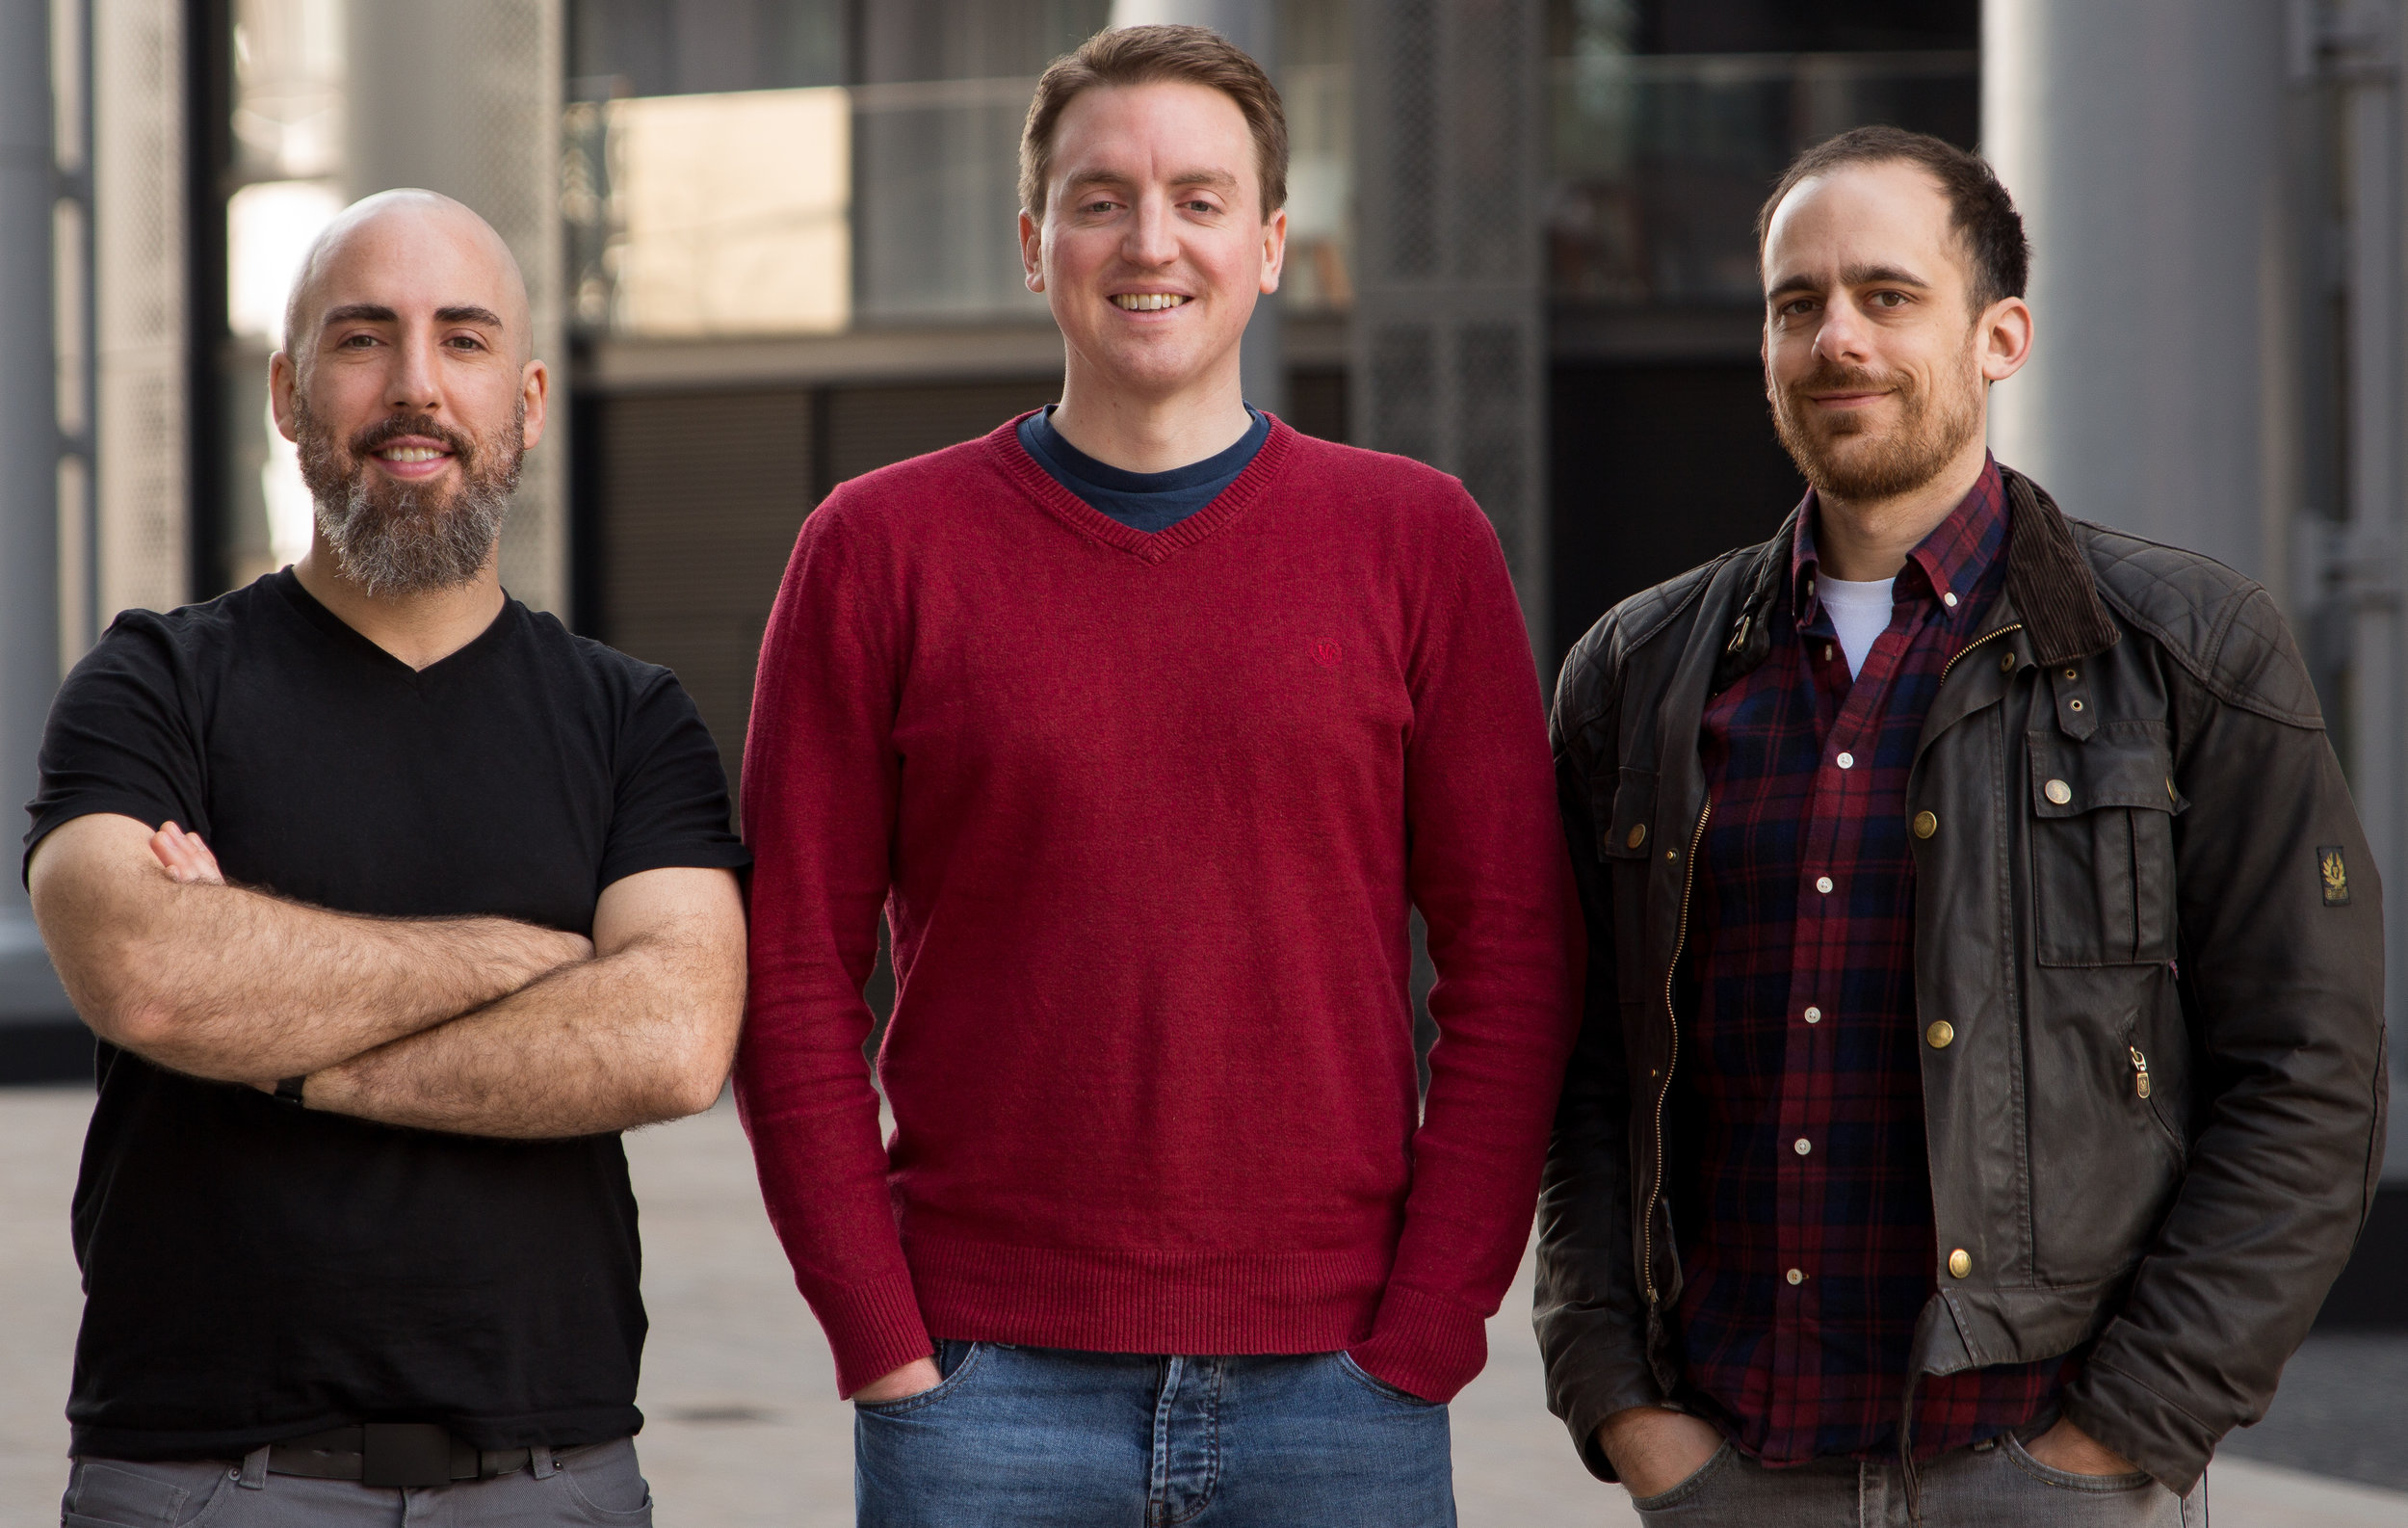 Matt, Dave and Josh form the core of Nomographic's service offering. -